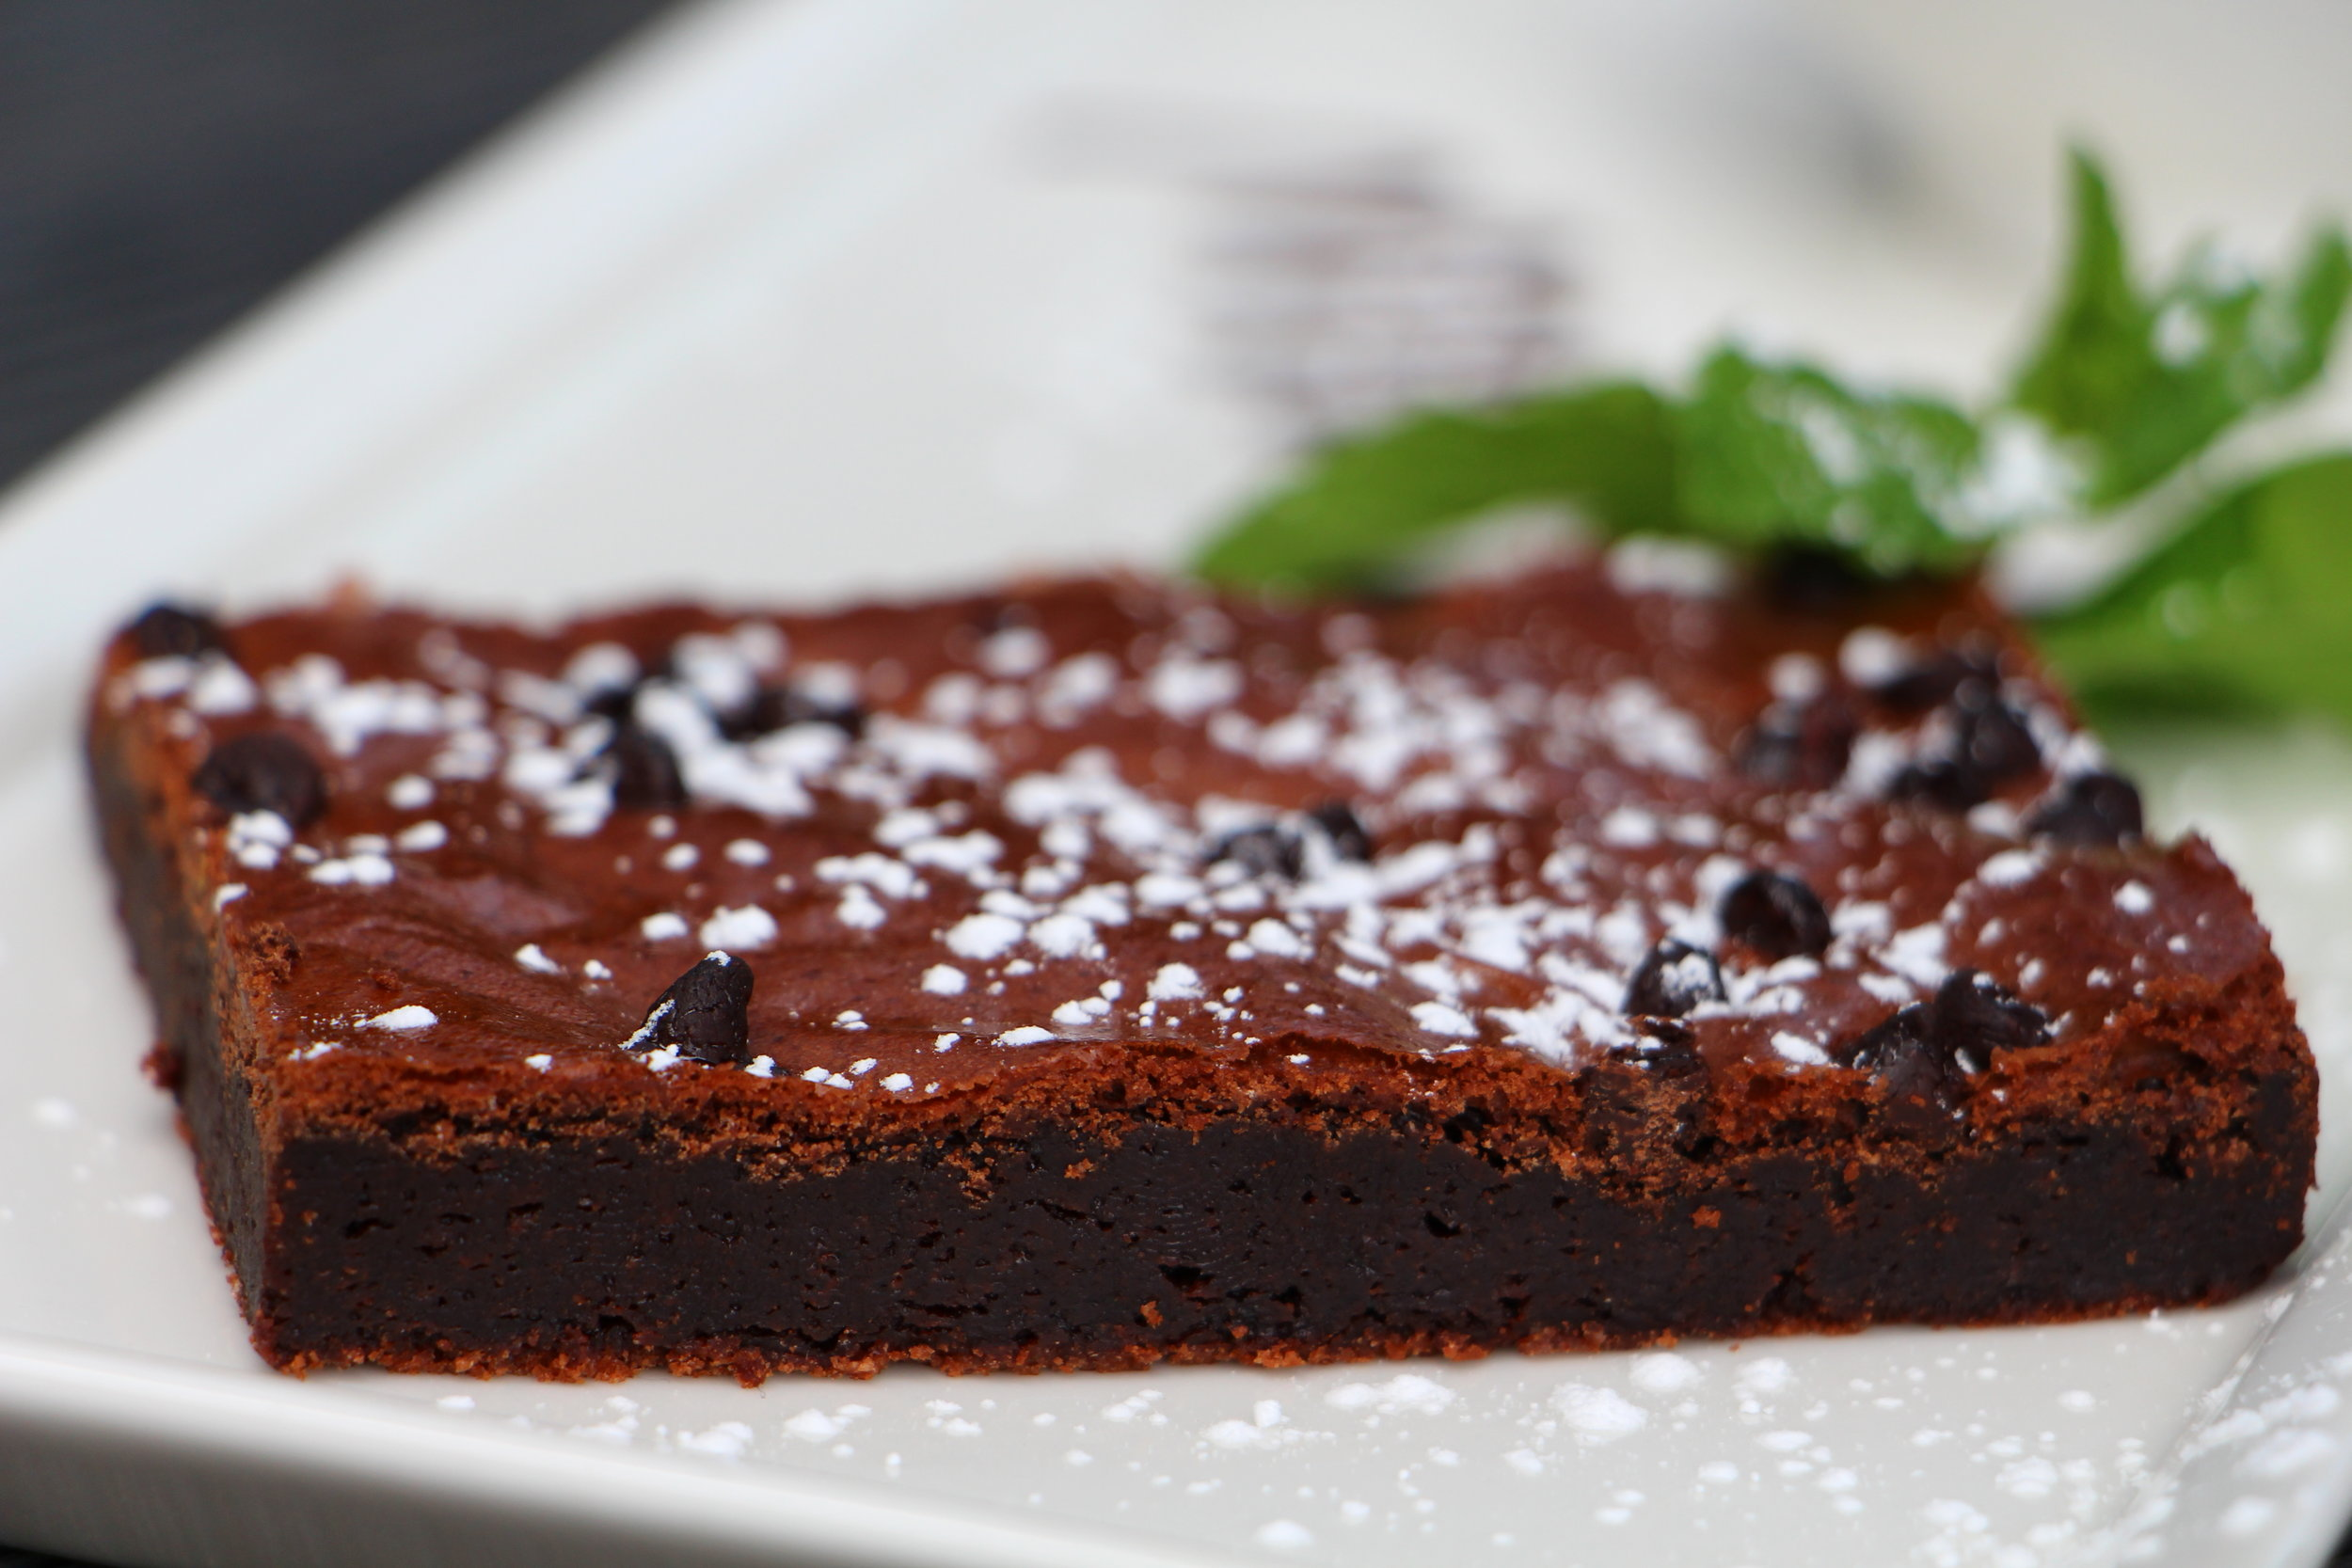 """A traditional American dessert that is a chocolate heaven of fudgy chocolate yumminess. Perfect treat for the little ones who want something with """"lots of chocolate""""."""